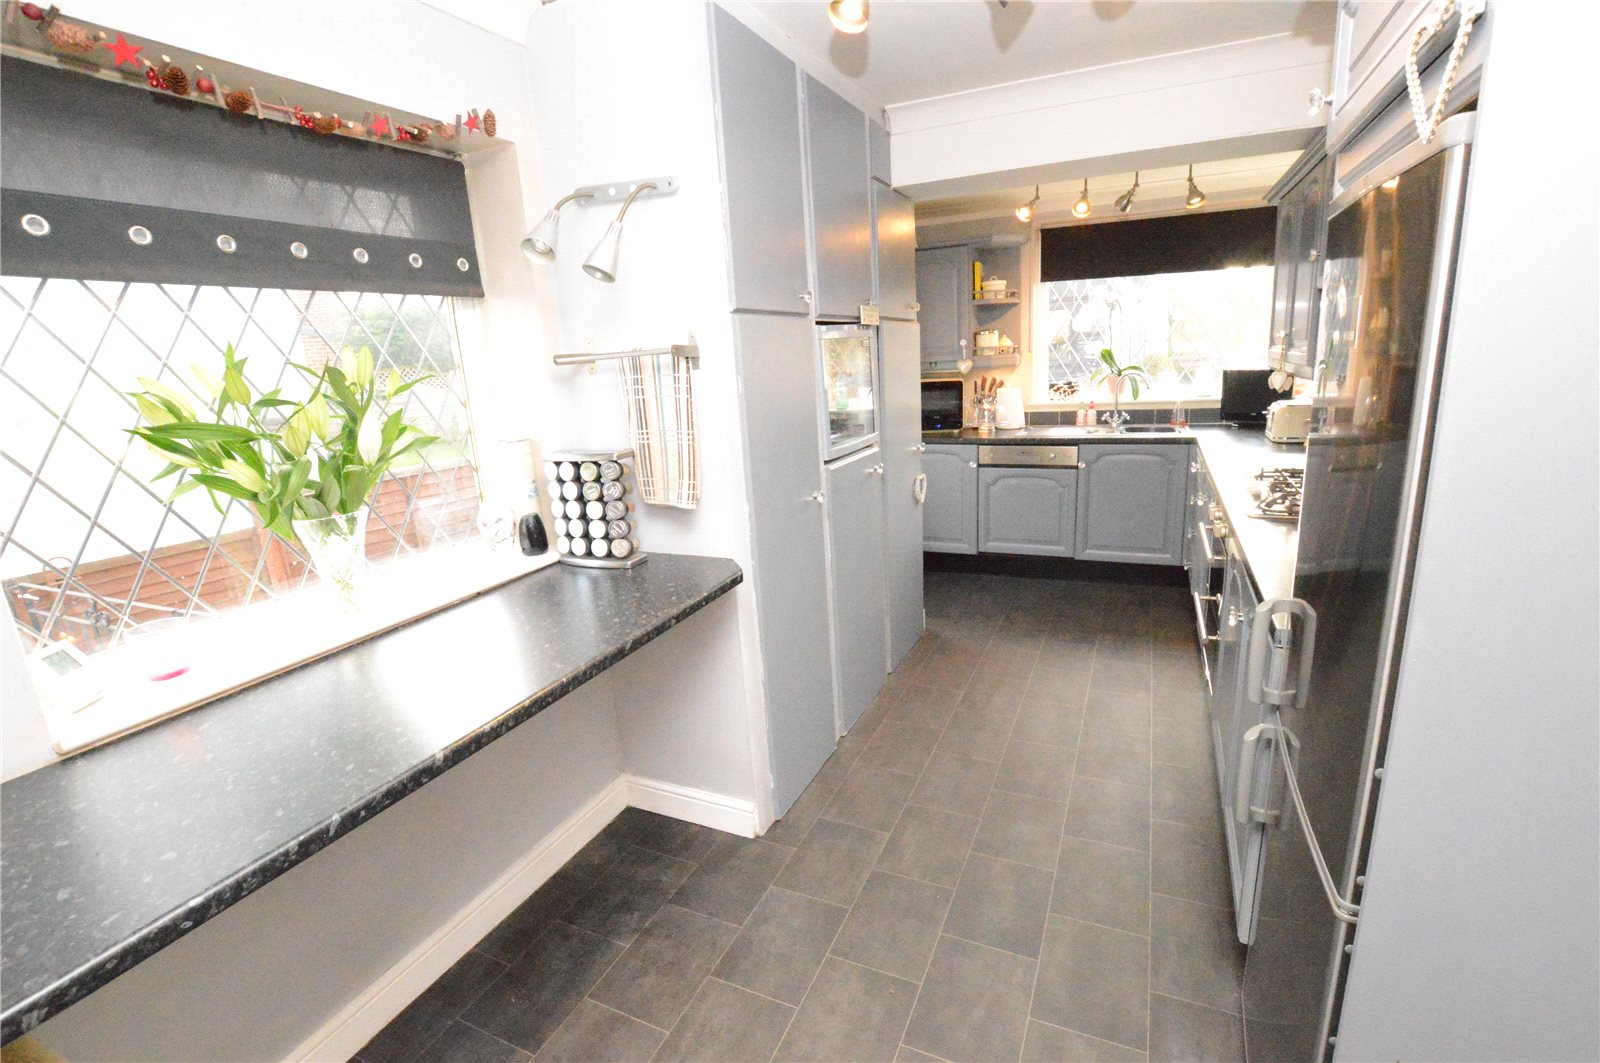 property for sale in Crossgates, Interior fitted modern grey and white kitchen